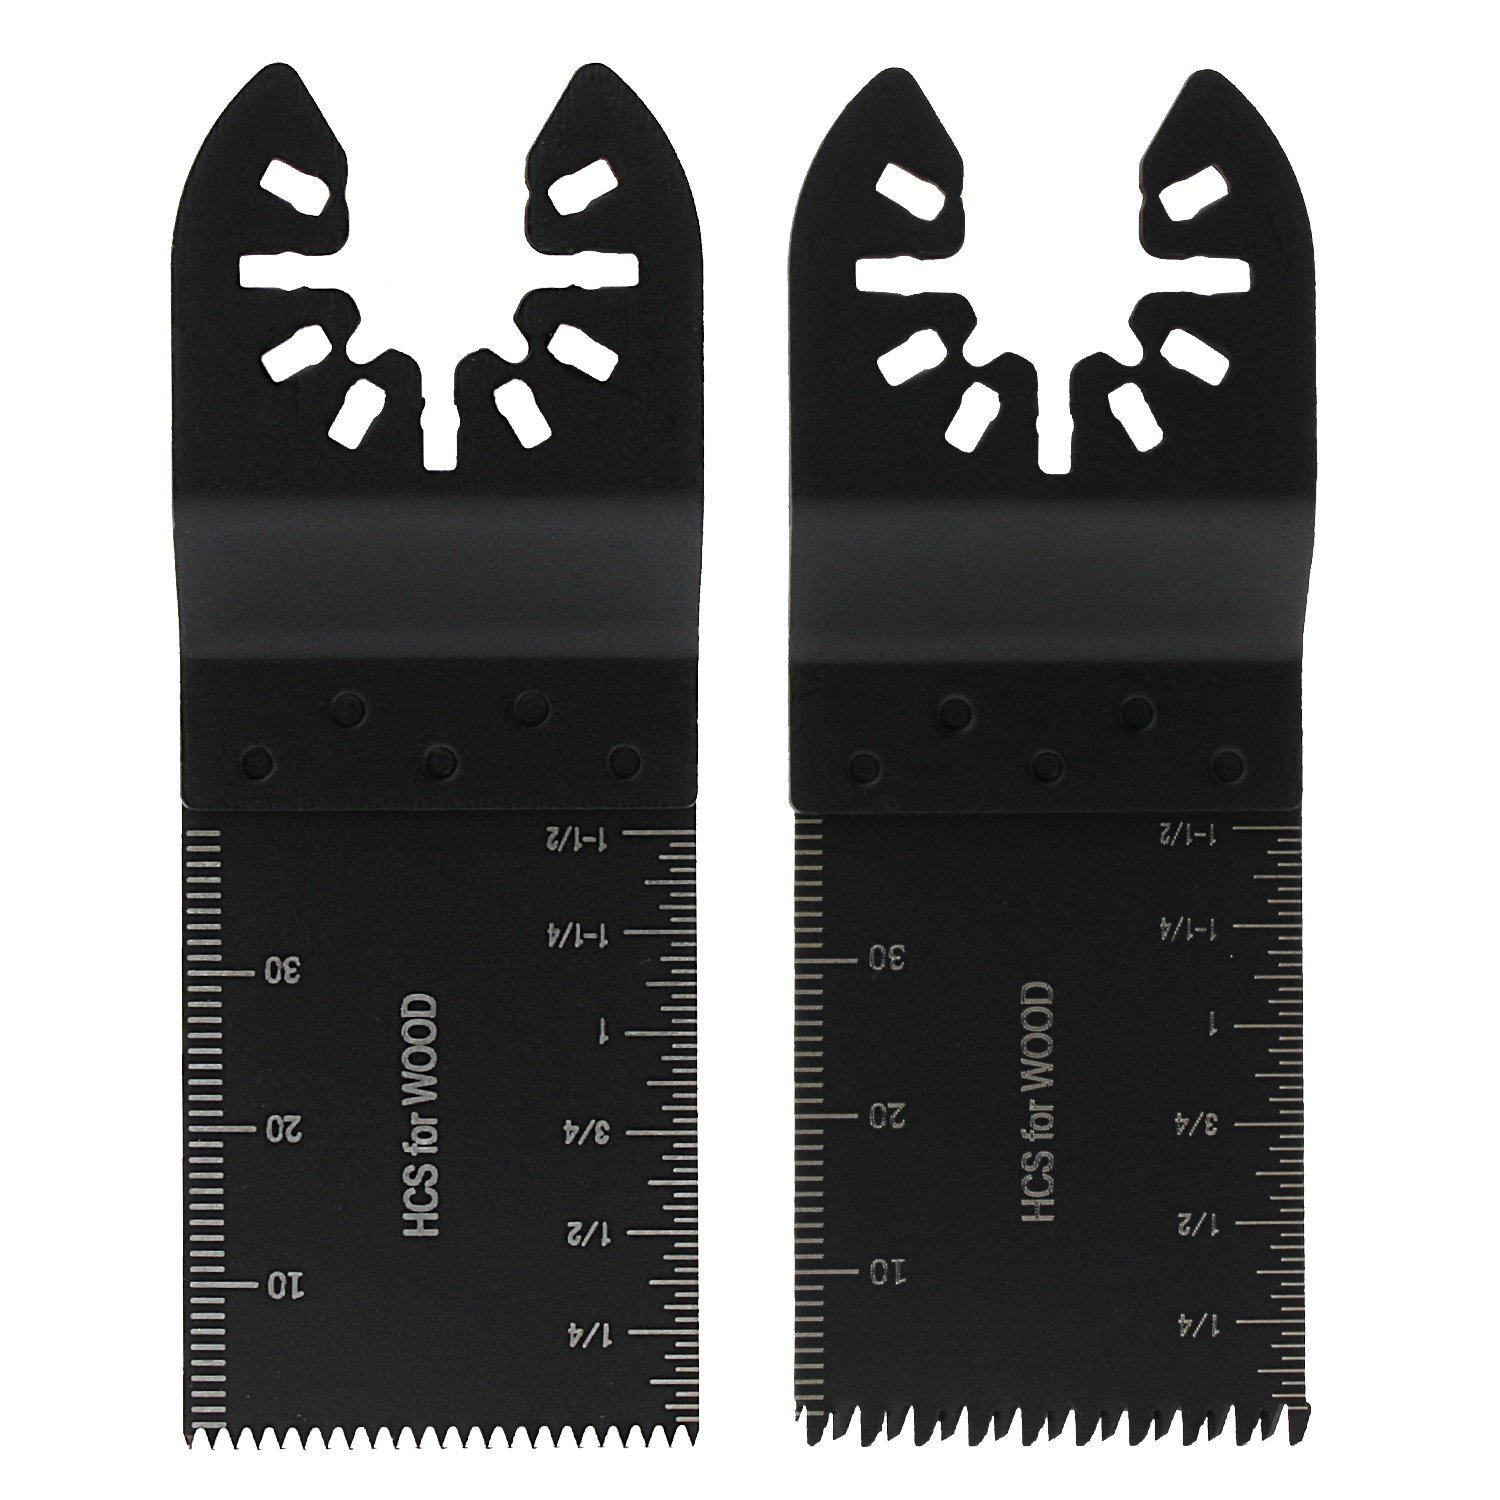 ESUMIC 15Pcs Oscillating Saw Blade Grinding Rasp Kit for RockWell Sonicrafter Work Oscillating Multitool Accesory by ESUMIC (Image #3)